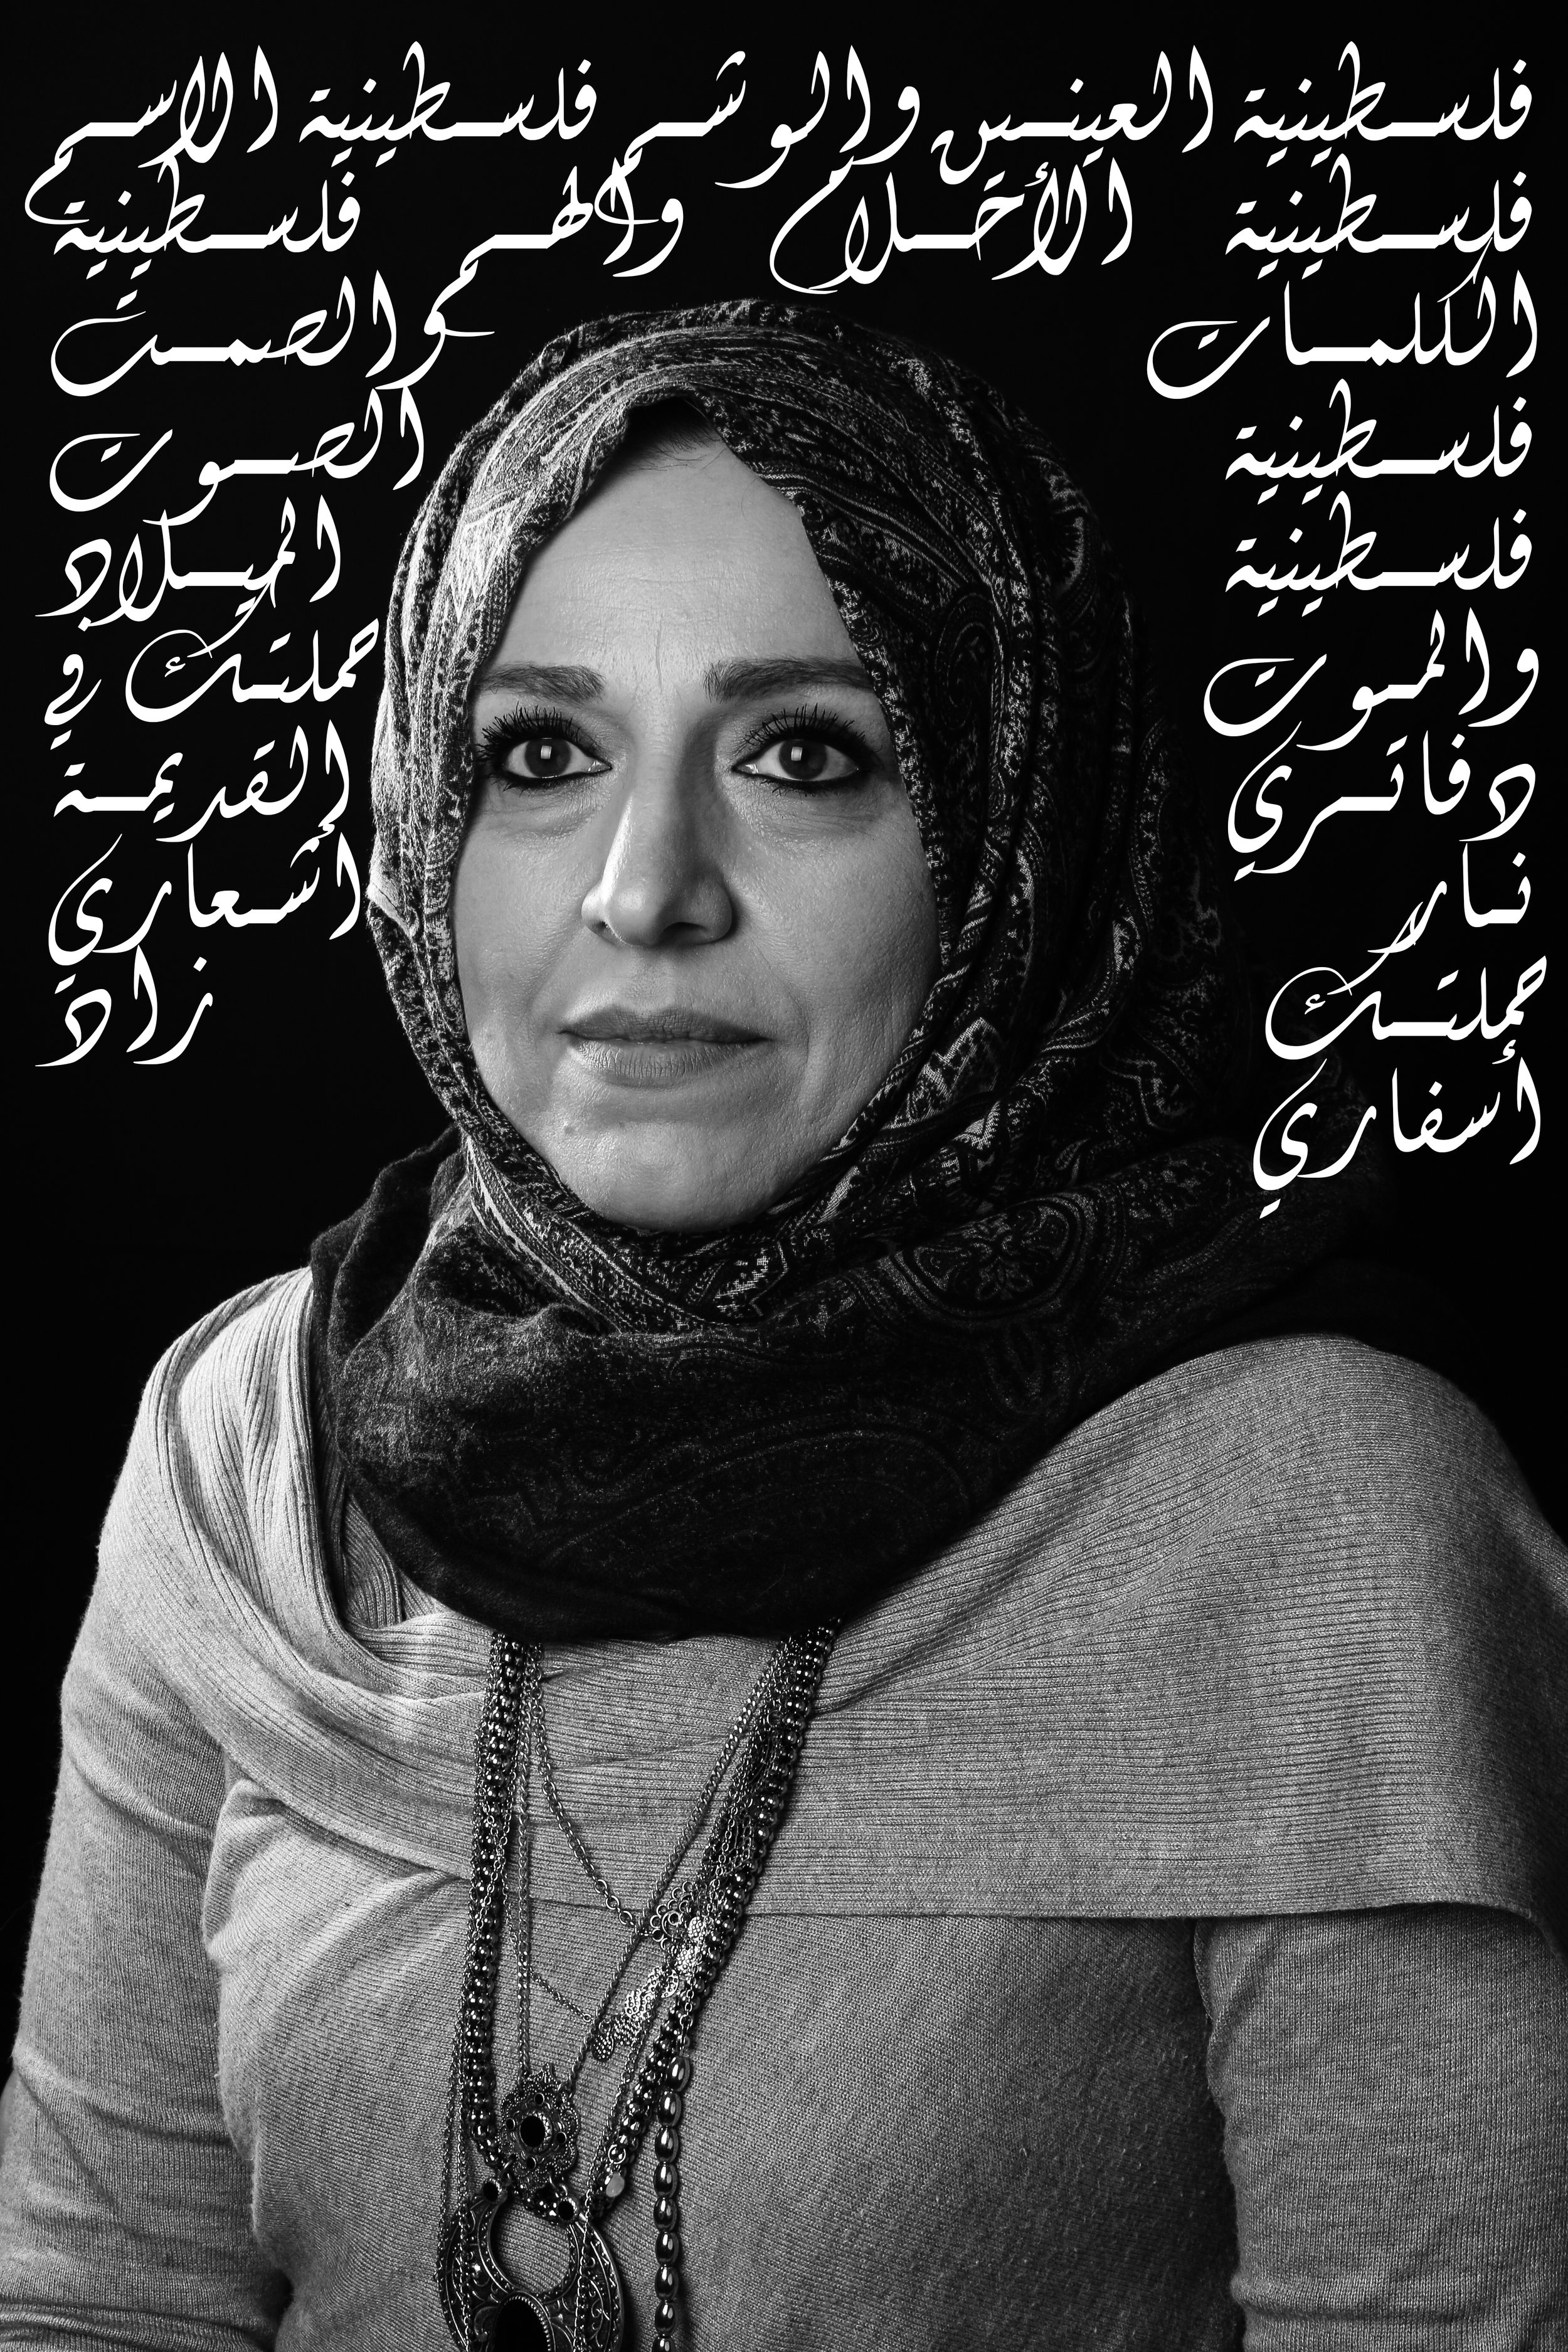 """""""Her eyes are Palestinian, Her name, Palestinian, Her dreams, and sorrow, Palestinian, Her words and her silence, Palestinian, Her voice, Palestinian, Her birth and her death, Palestinian, Palestine,I have carried you in my old notebooks as the fire of my verses"""""""